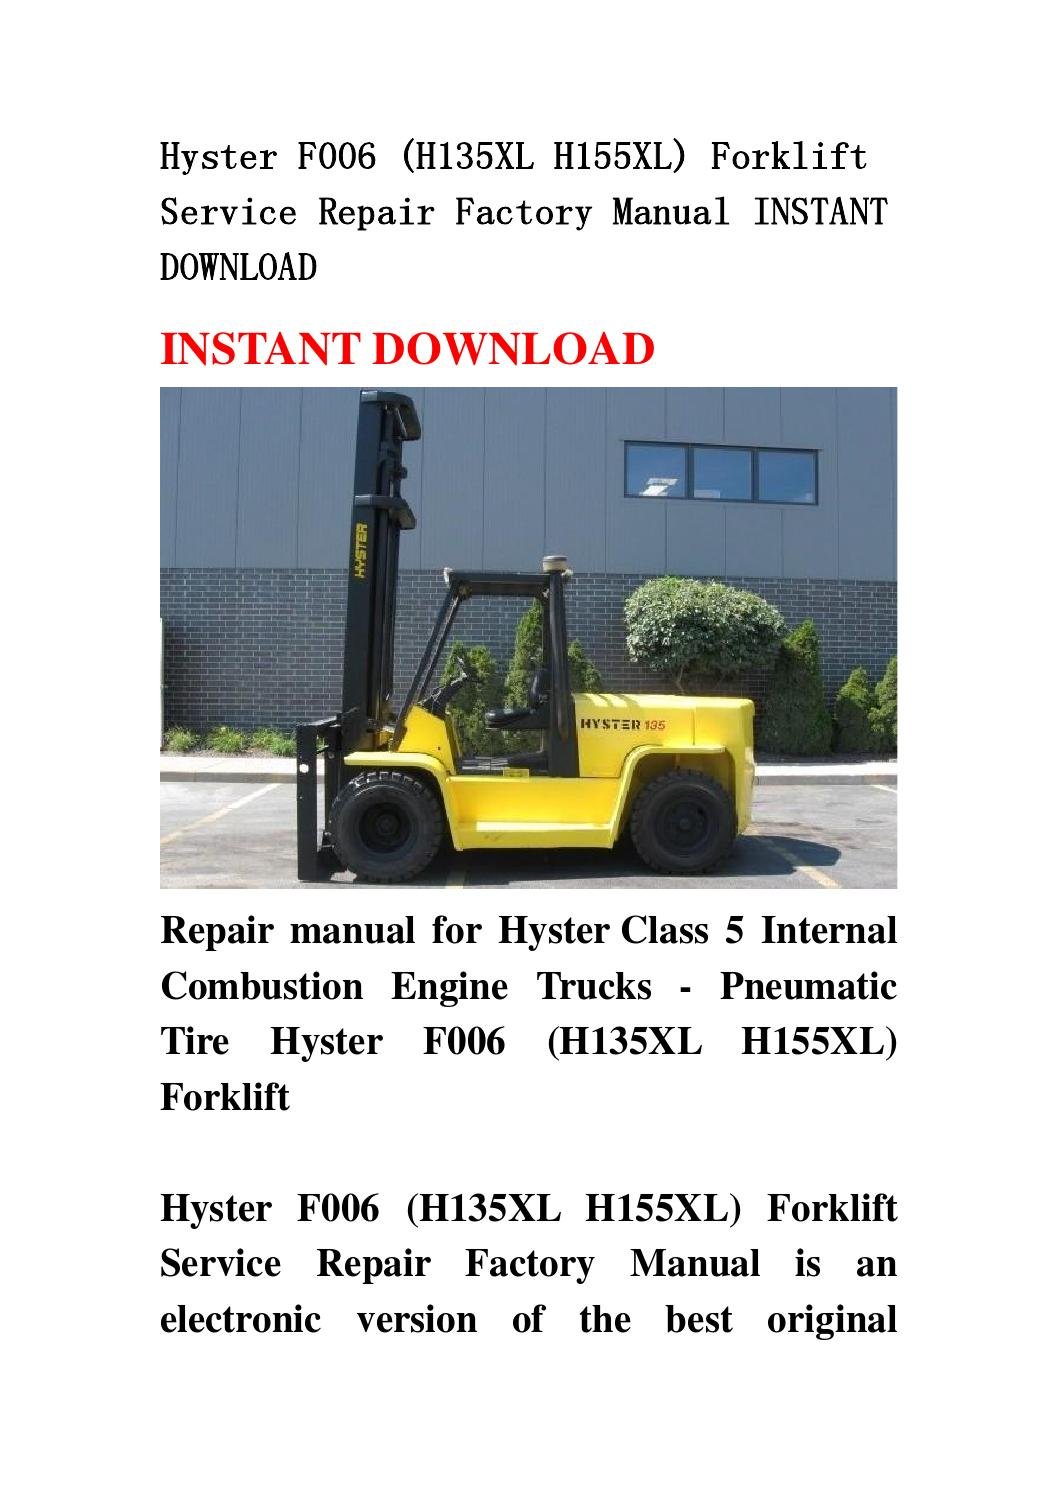 Hyster H155xl service Manual